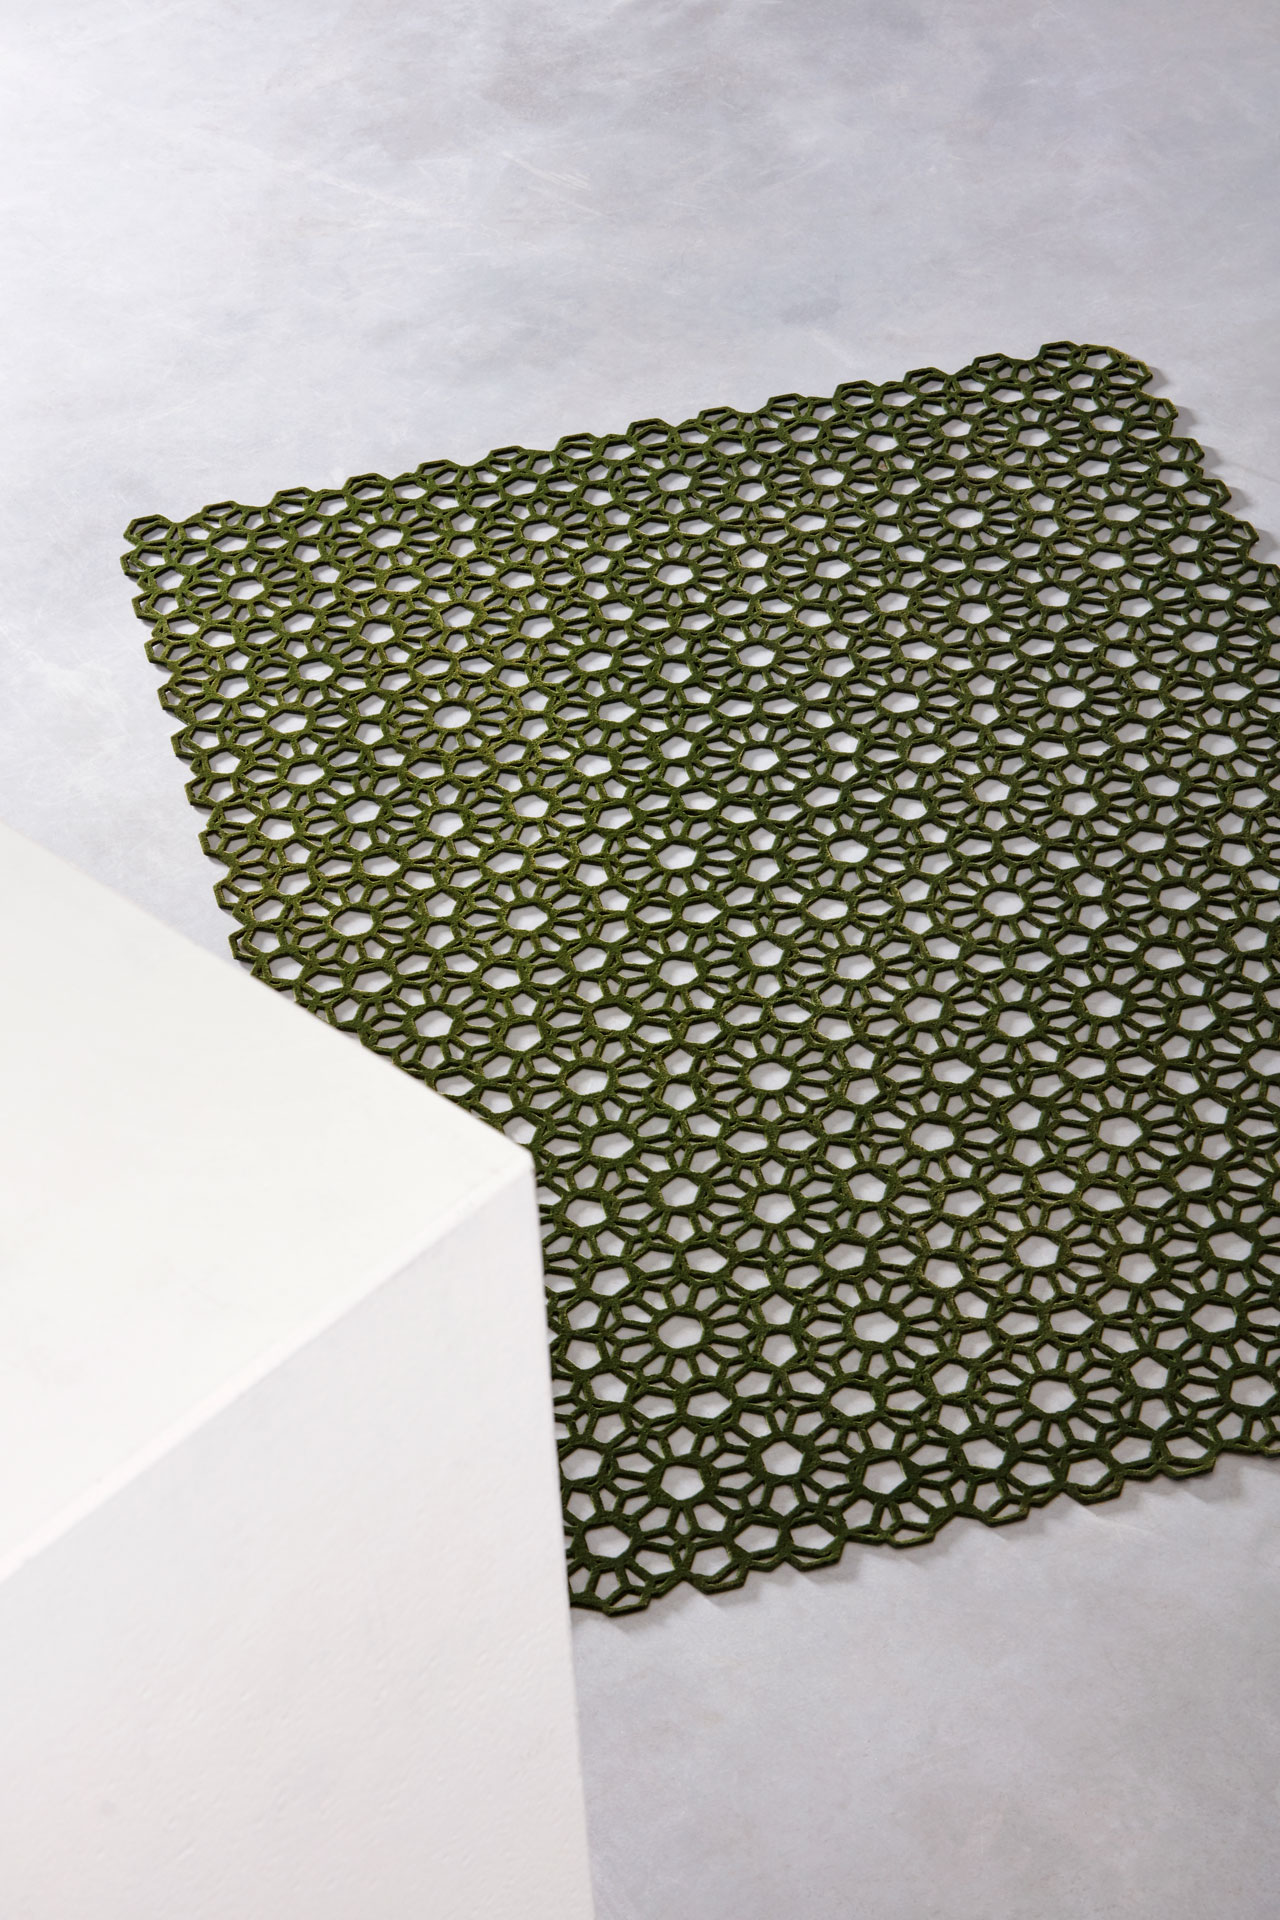 3D printed Open Rugs series by Studio Plott. Photo by Ronald Smits.